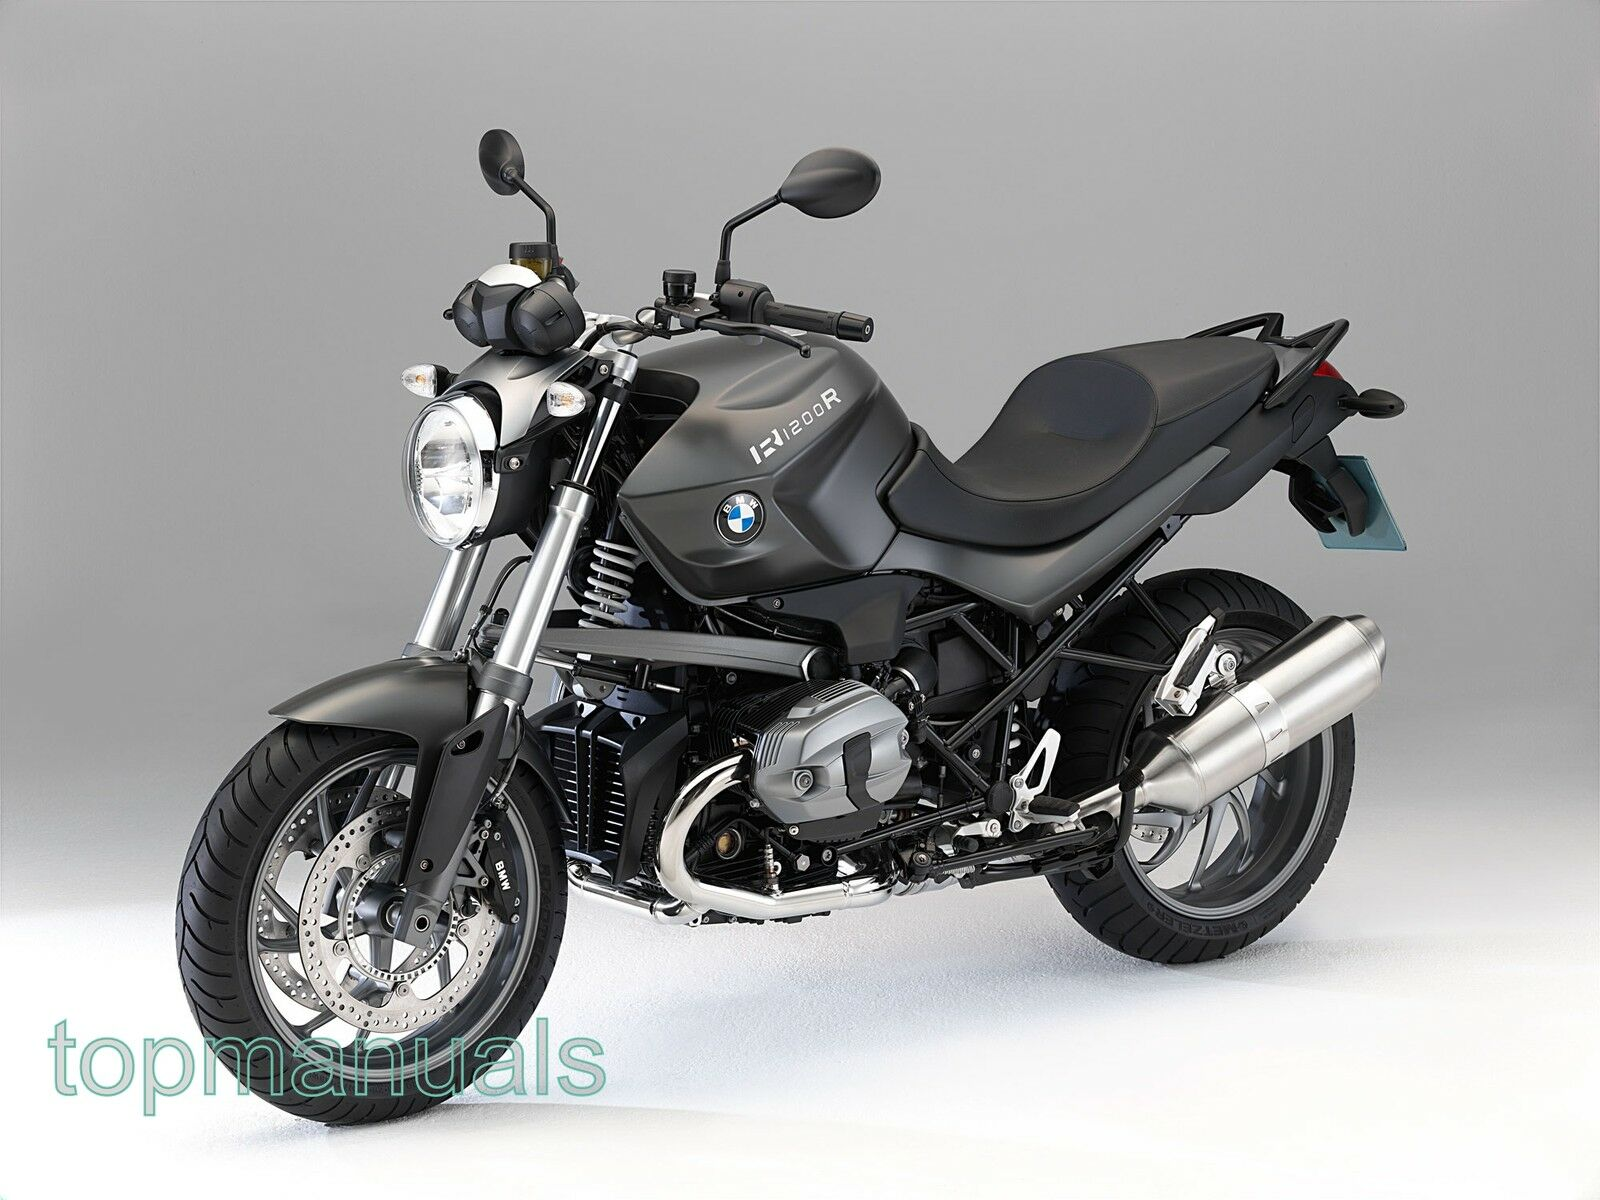 Bmw R 1200 R Workshop Service Manual R1200R On Dvd 1 of 1FREE Shipping See  More